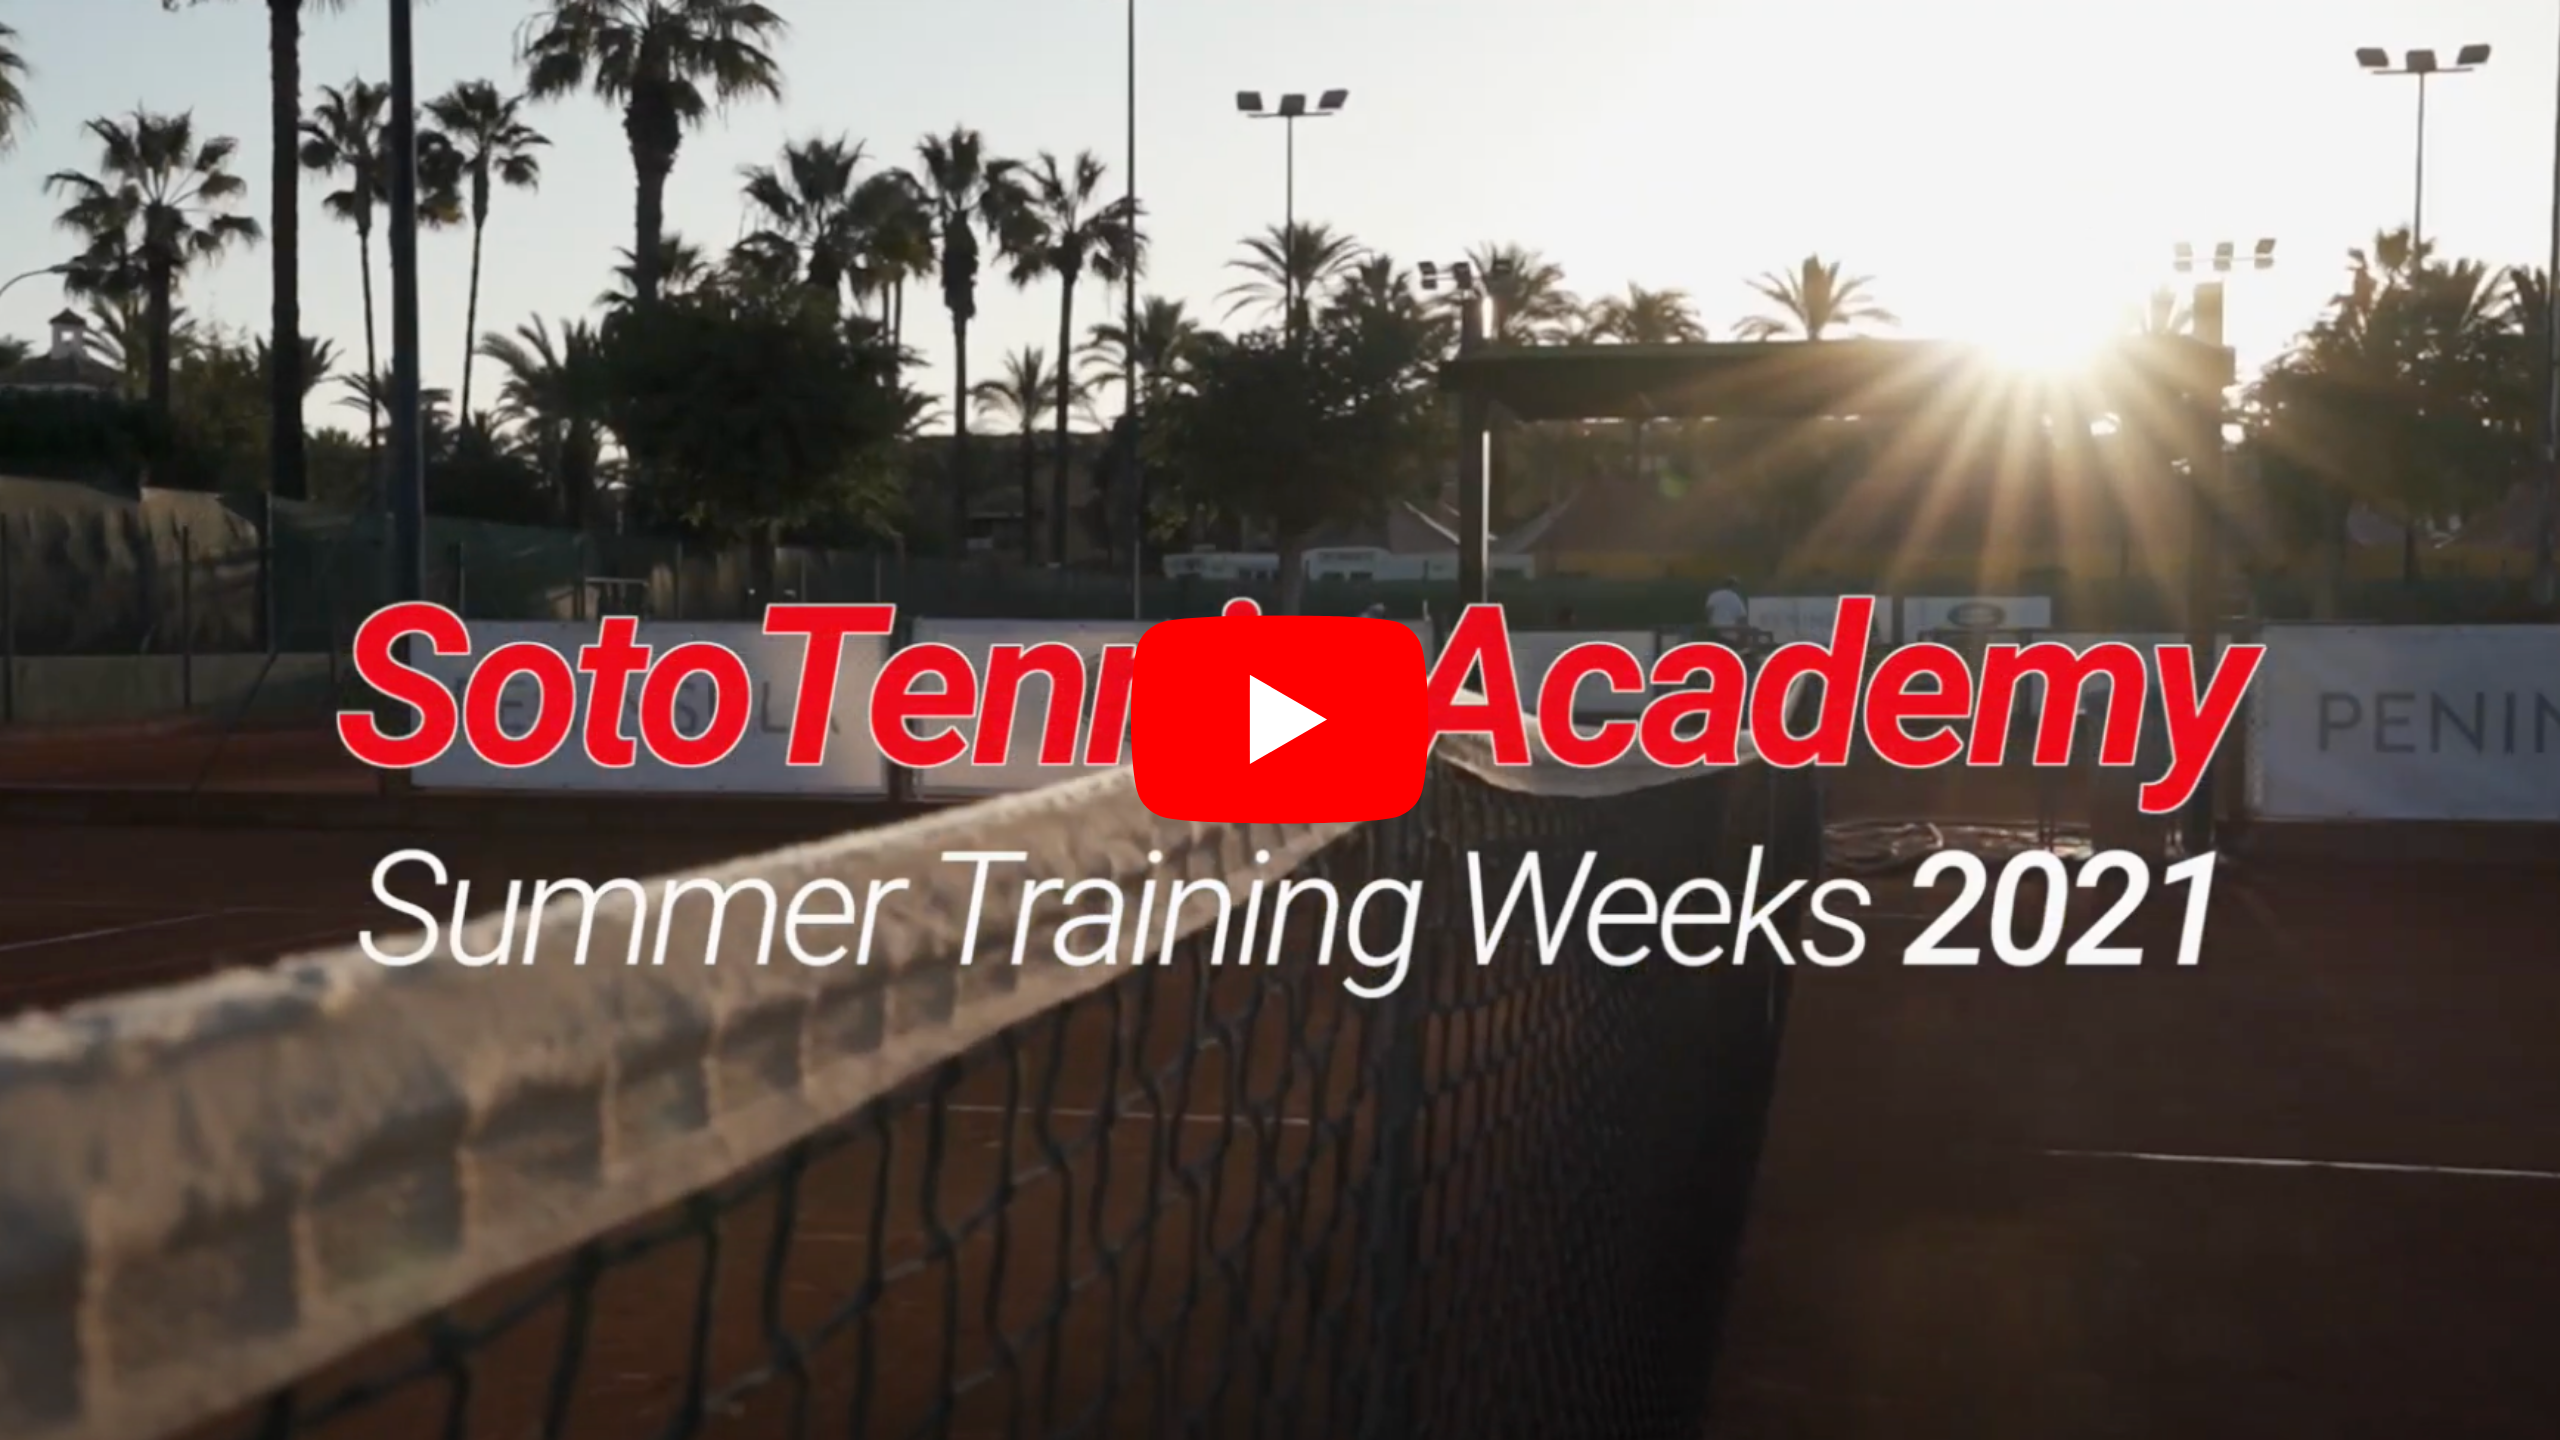 SotoTennis Academy Court with palm trees in background